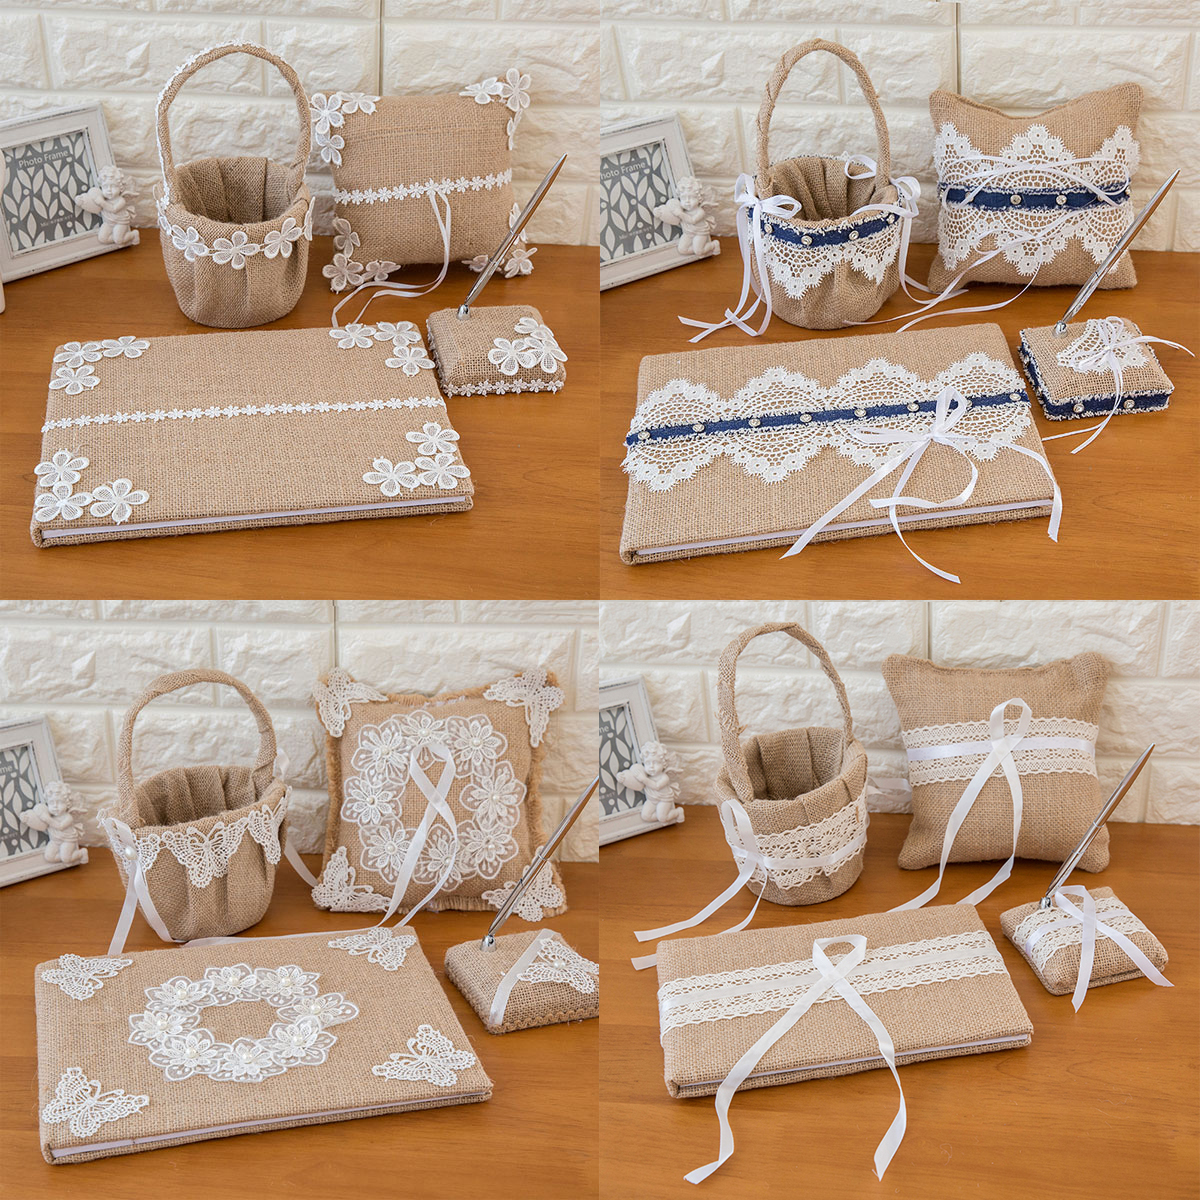 Jute Wine Bottle Bags 15cmx35cm 6 X 185 Champagne Covers Loop Ramadhan Colgate Sensitive Whitening Toothpaste Pasta Gigi 120g Linen Gift Pouches Burlap Hessian Packaging Bag Us486